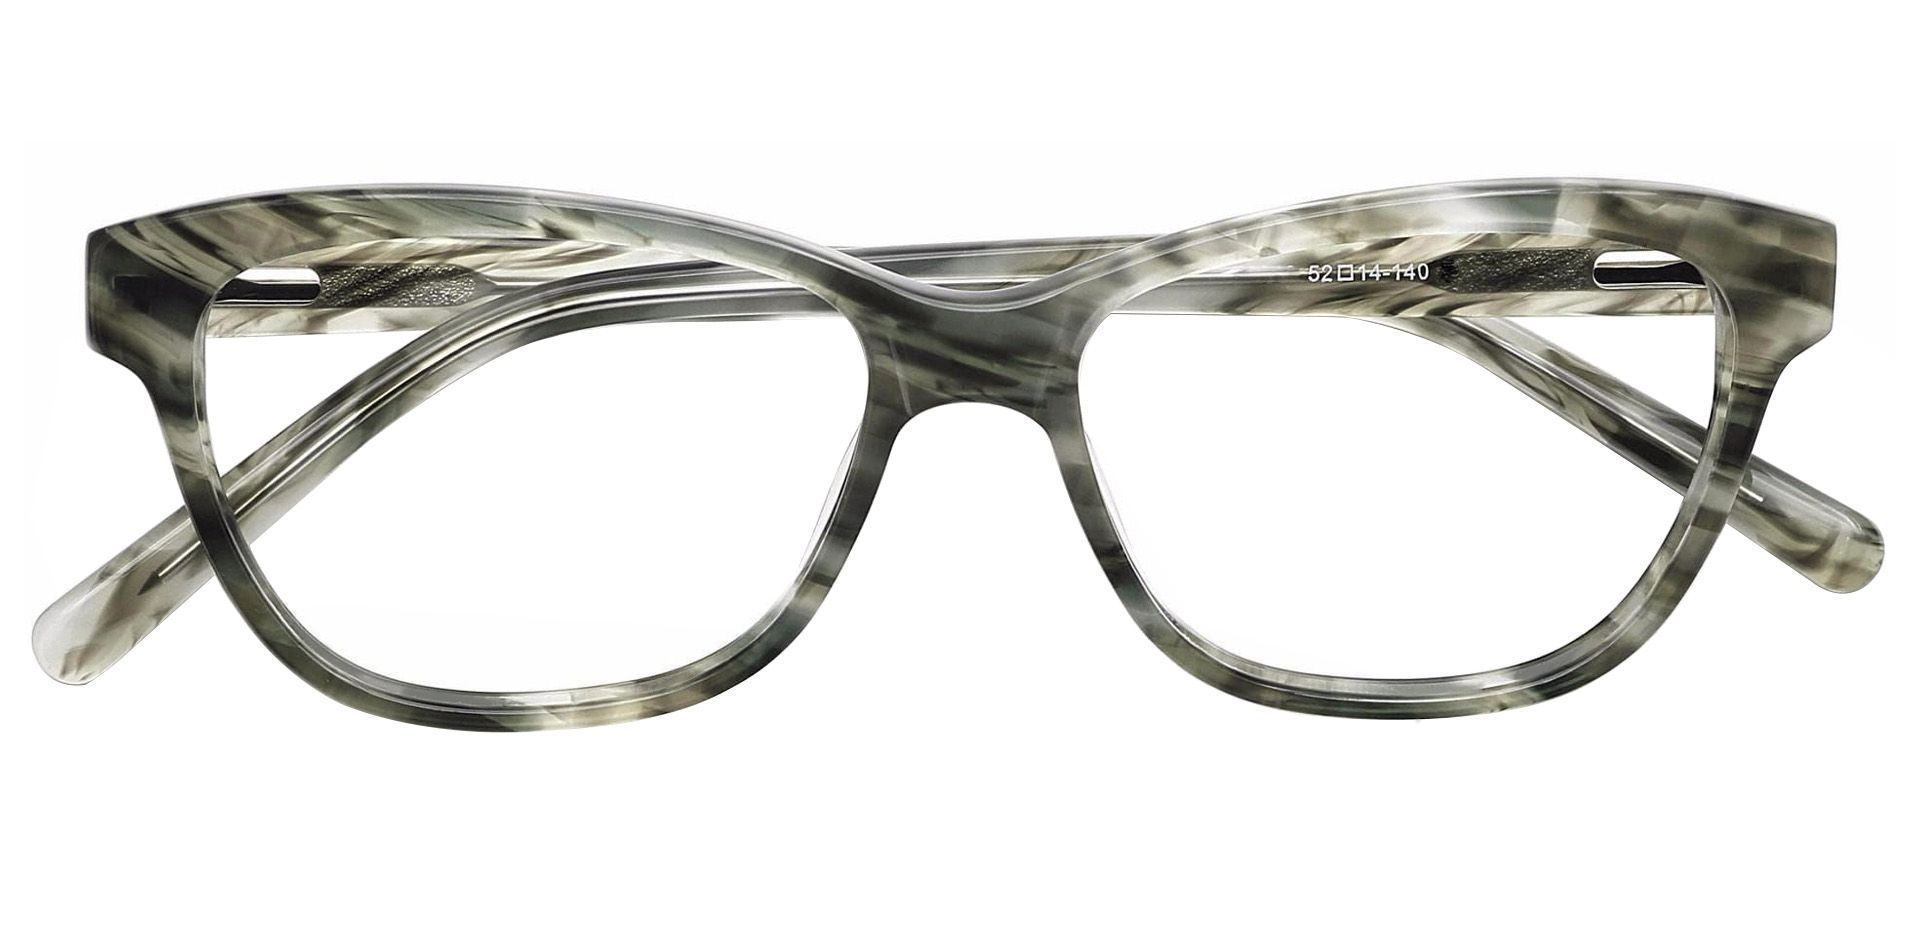 Swell Cat-eye Non-Rx Glasses - Two